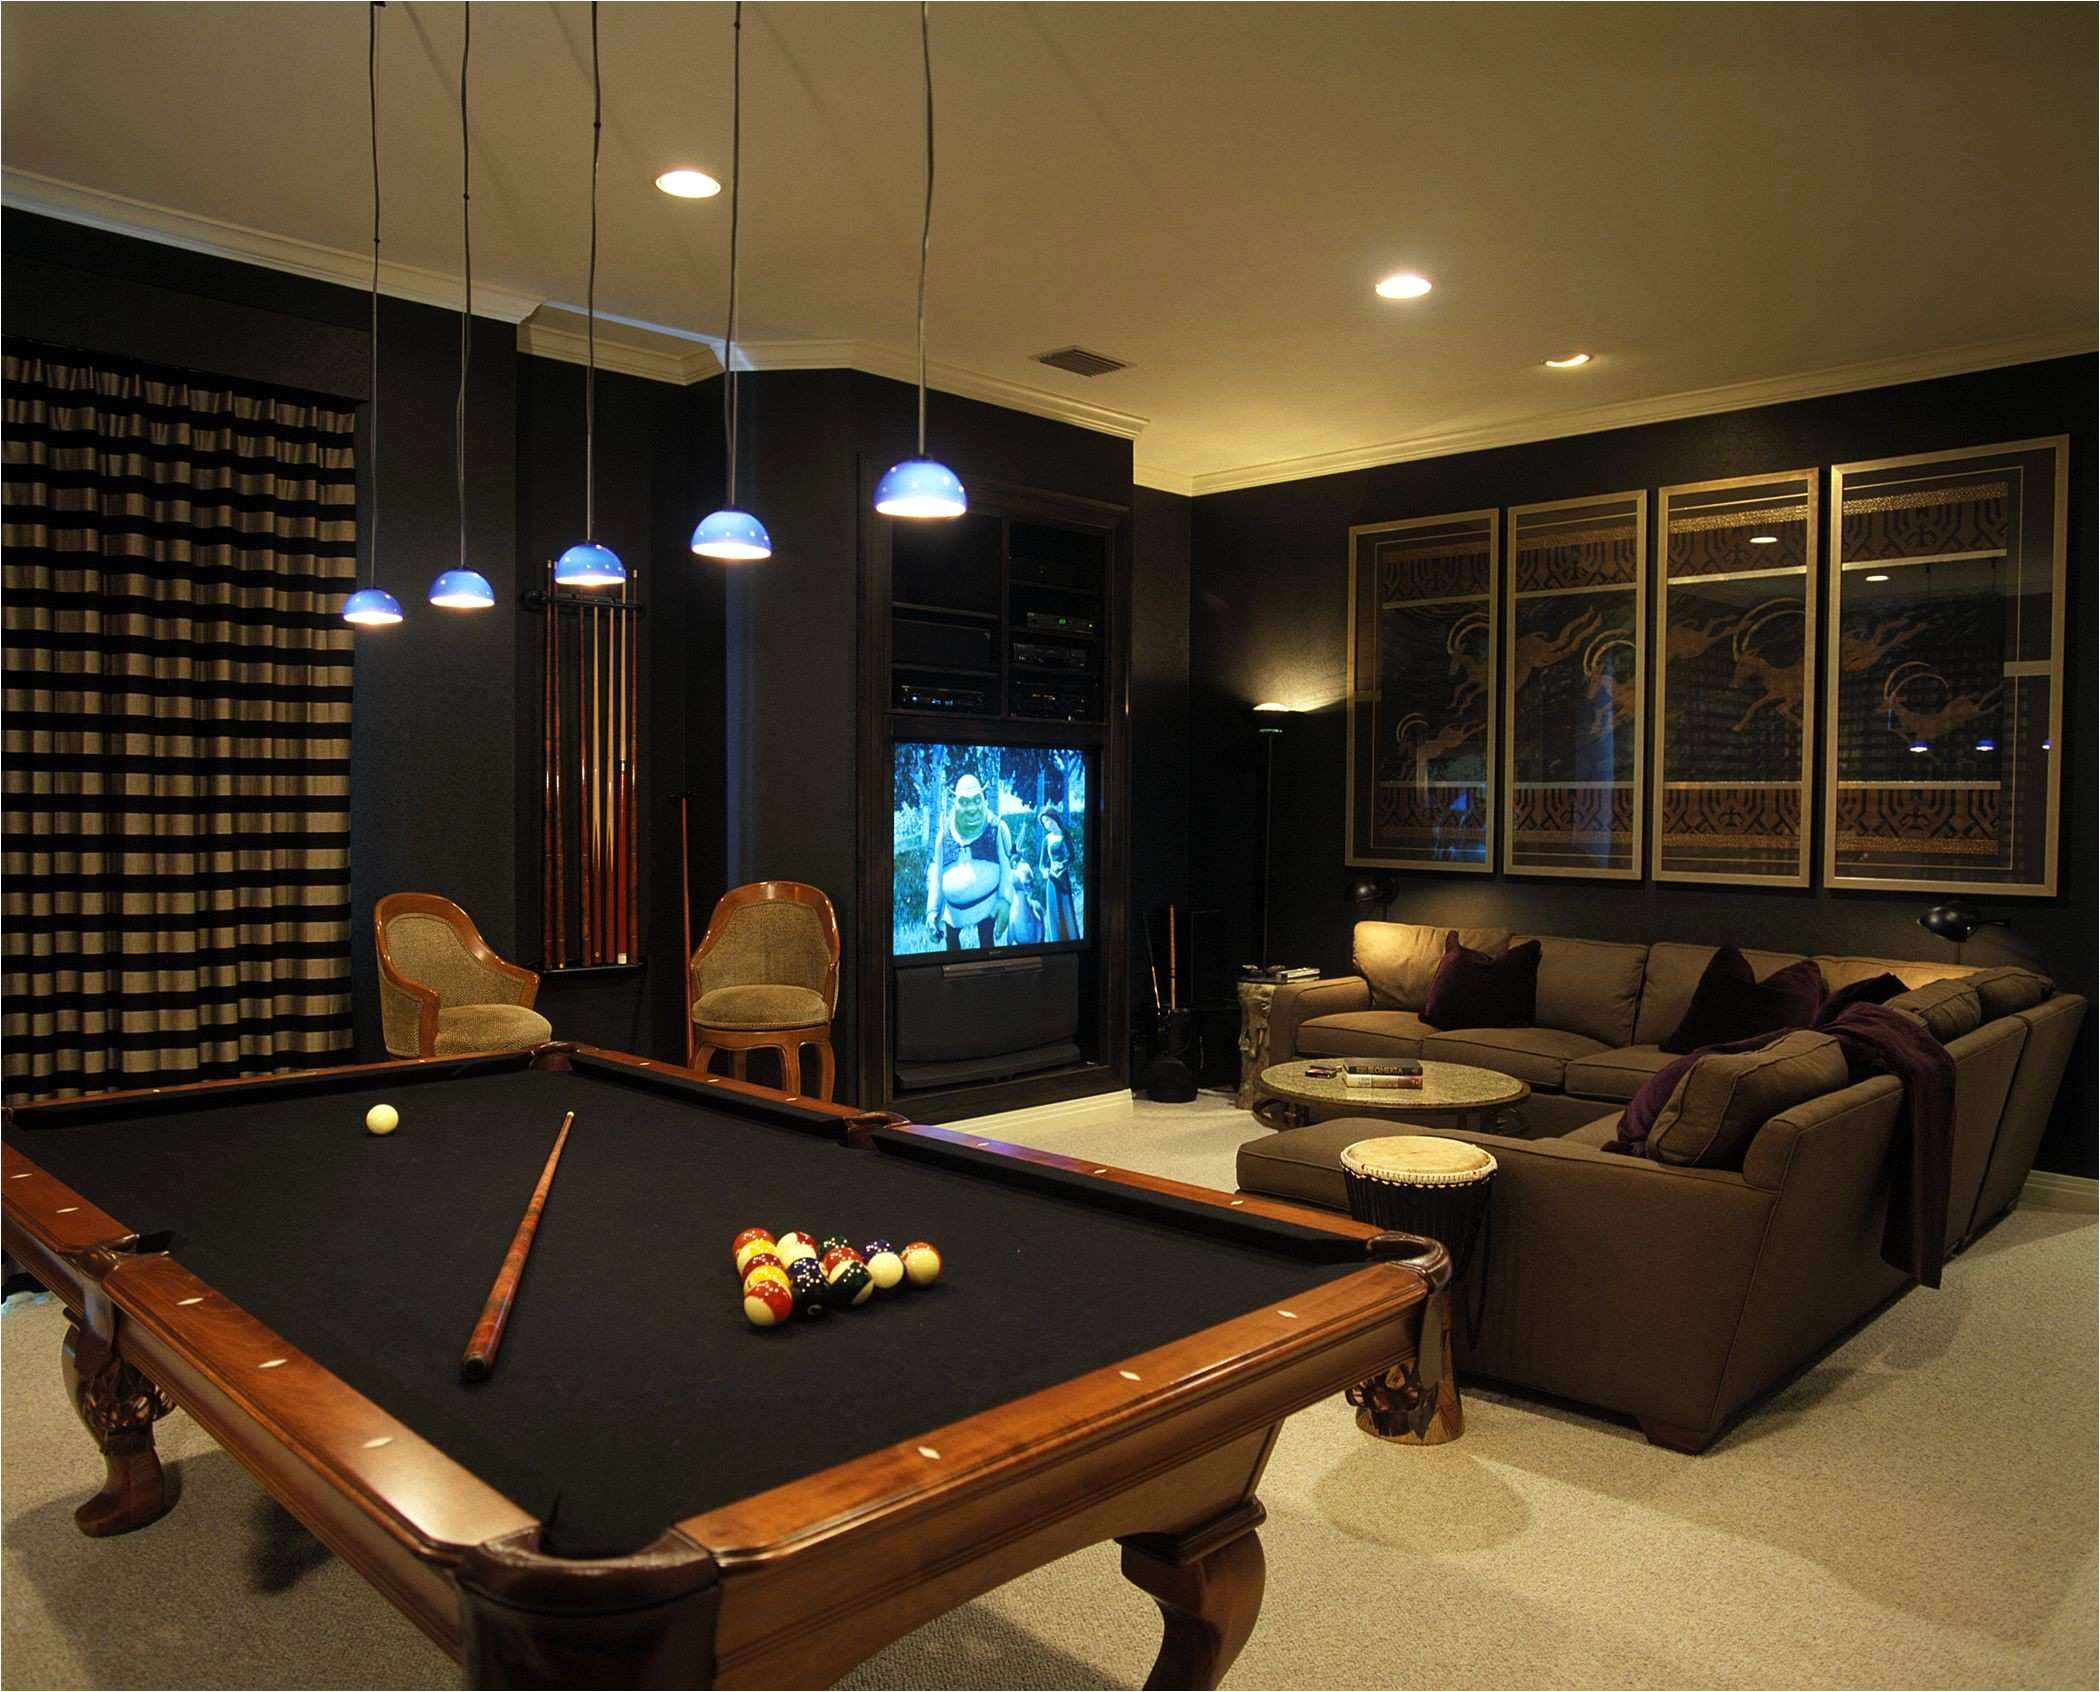 table designs magnificent pool pool billiard das beste von decorating ideas for pool area best bed circle bed circle bed